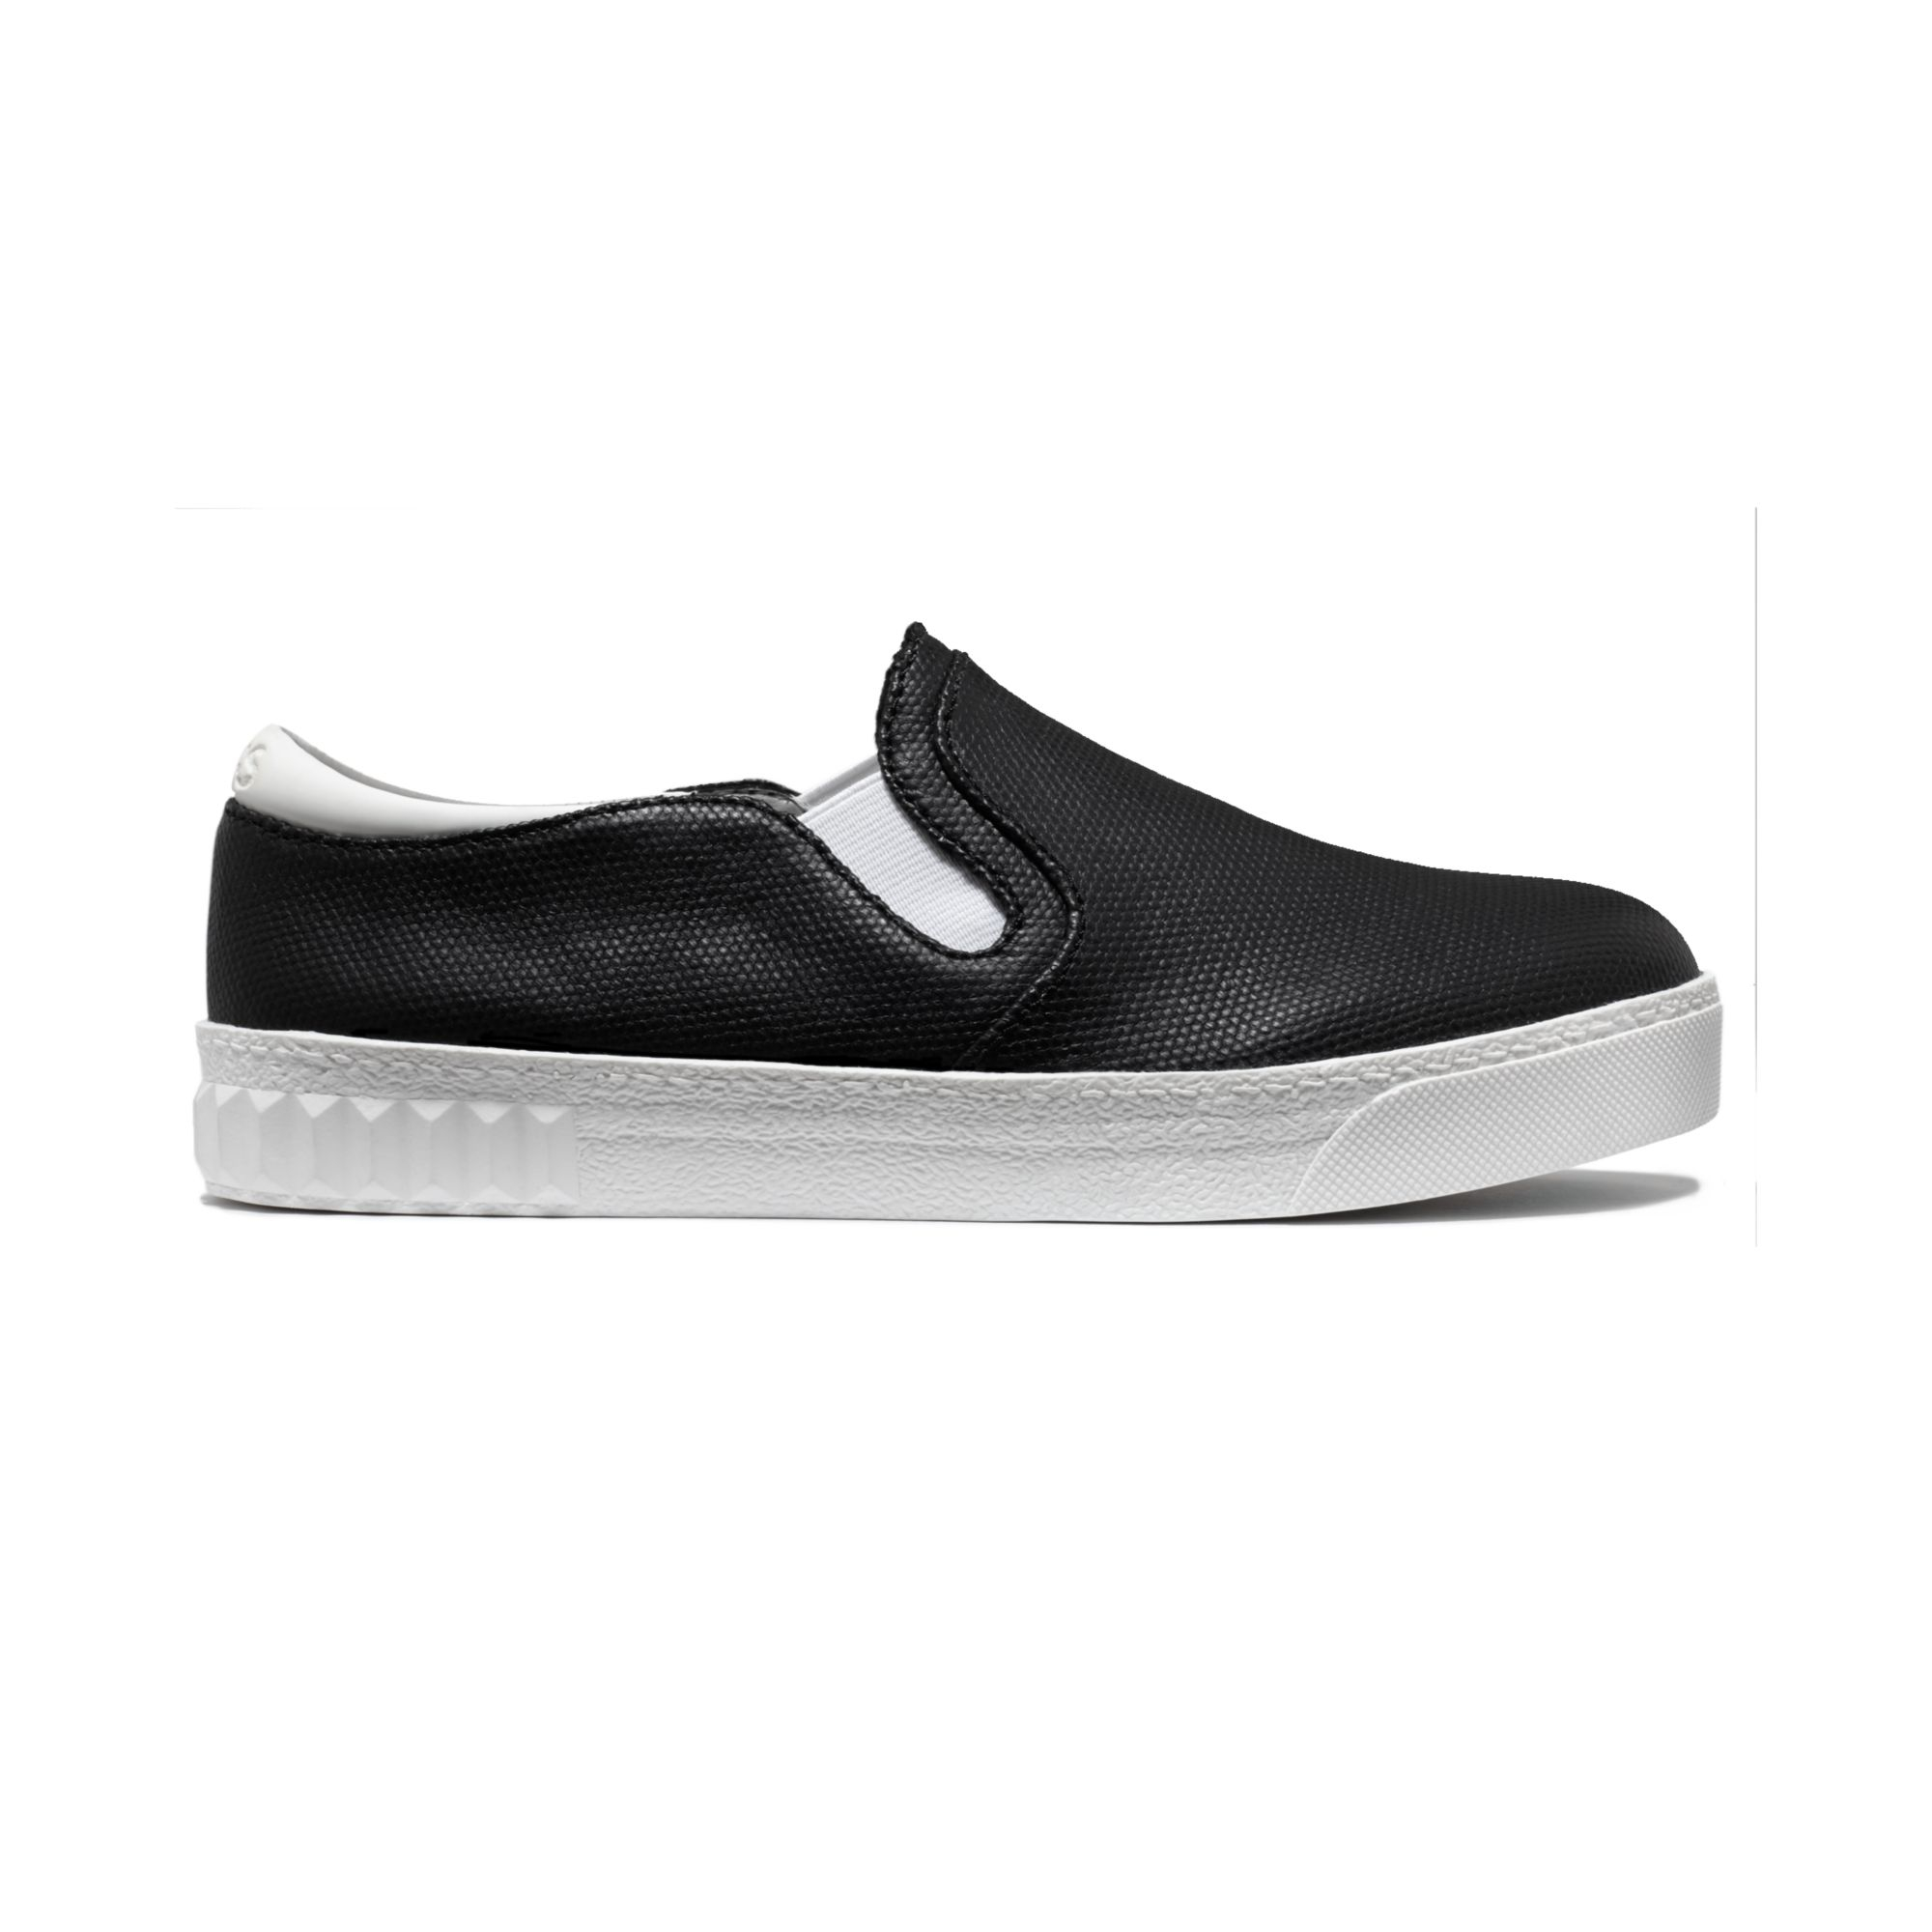 a18dd7b7fbe363 Lyst - Circus by Sam Edelman Cruz Slip On Sneakers in Black